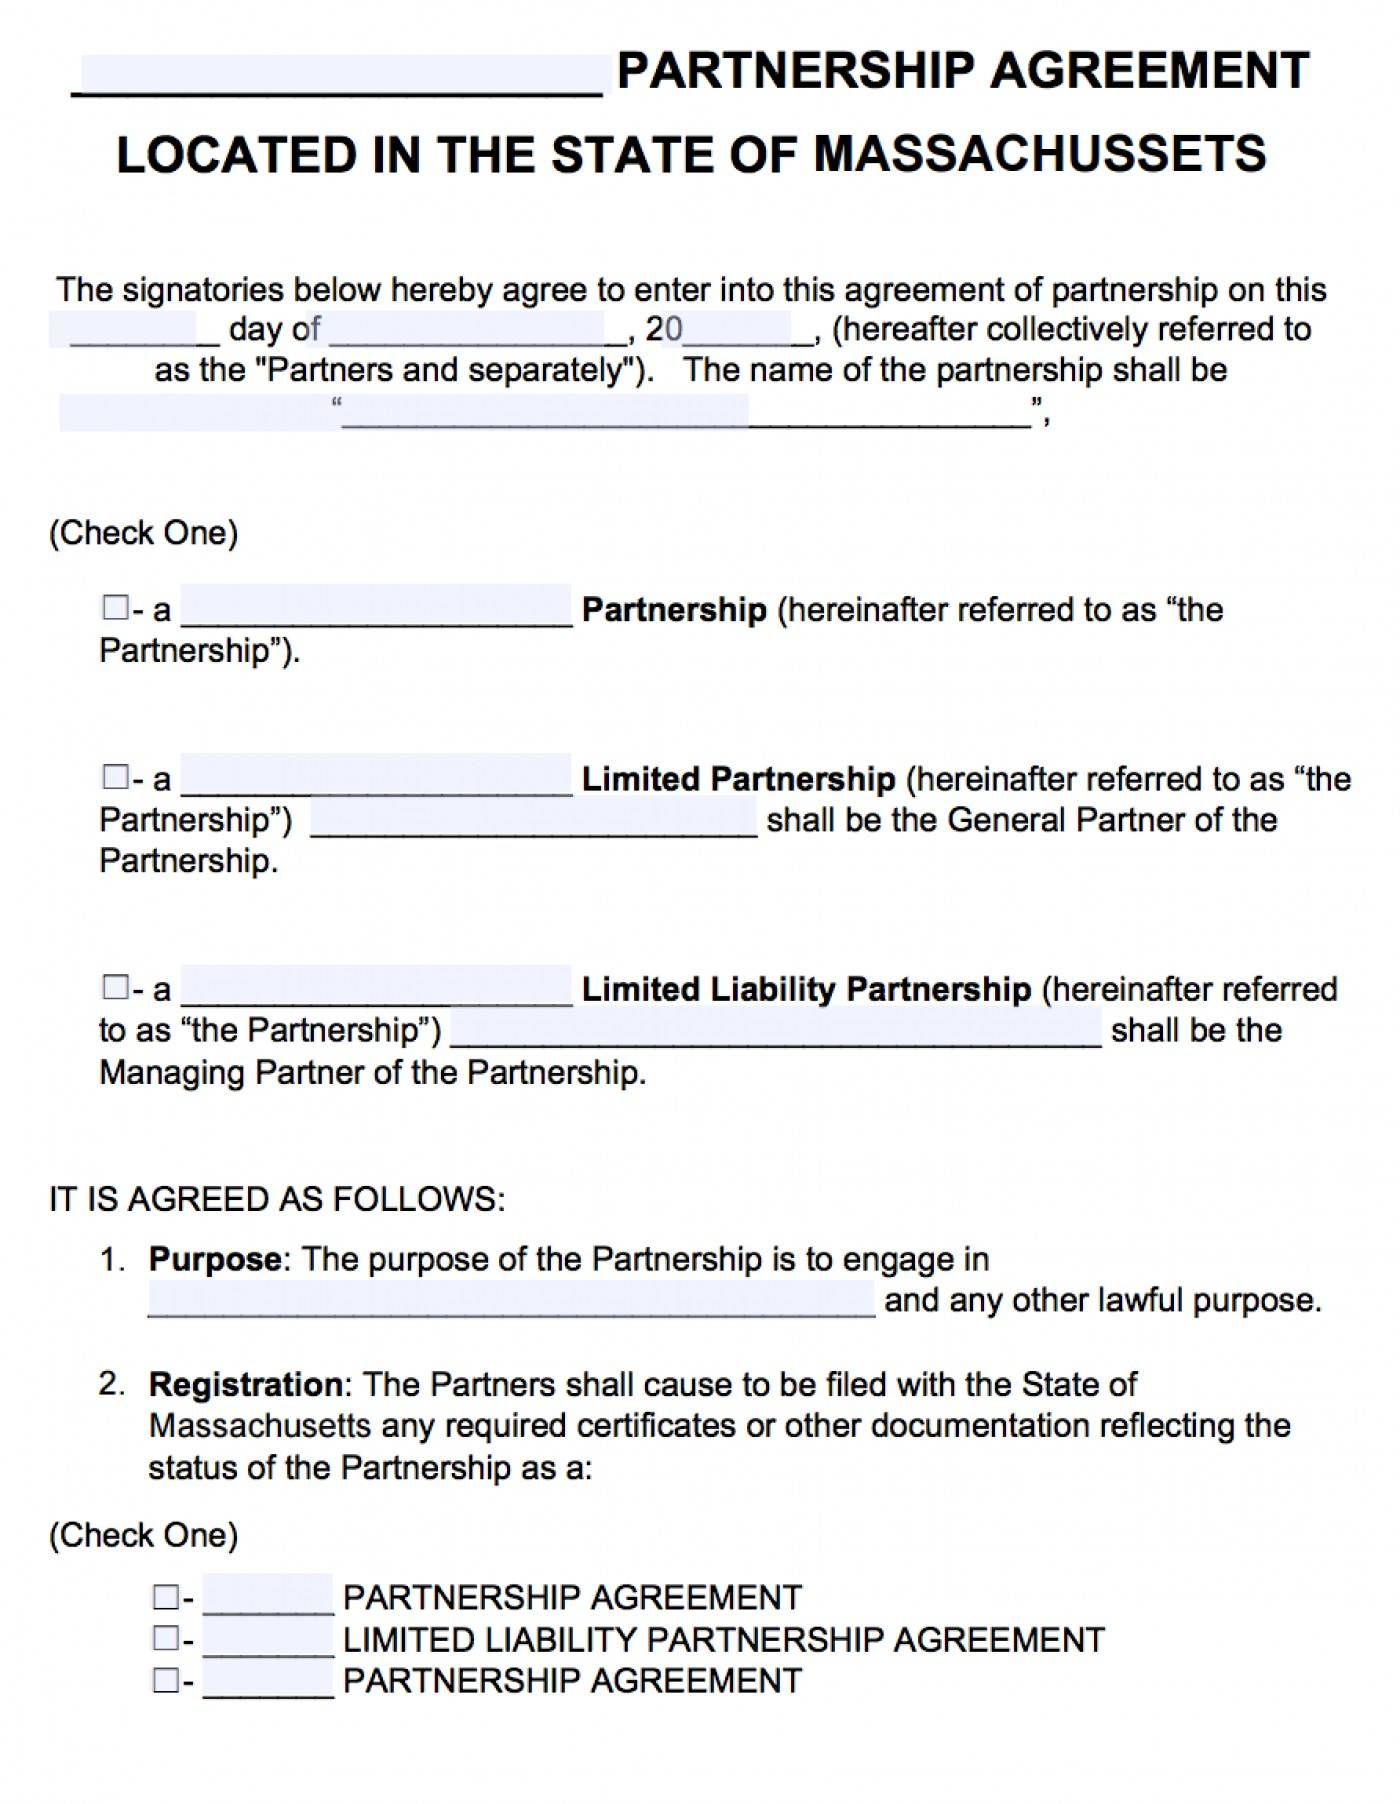 Limited Liability Partnership Agreement Template India